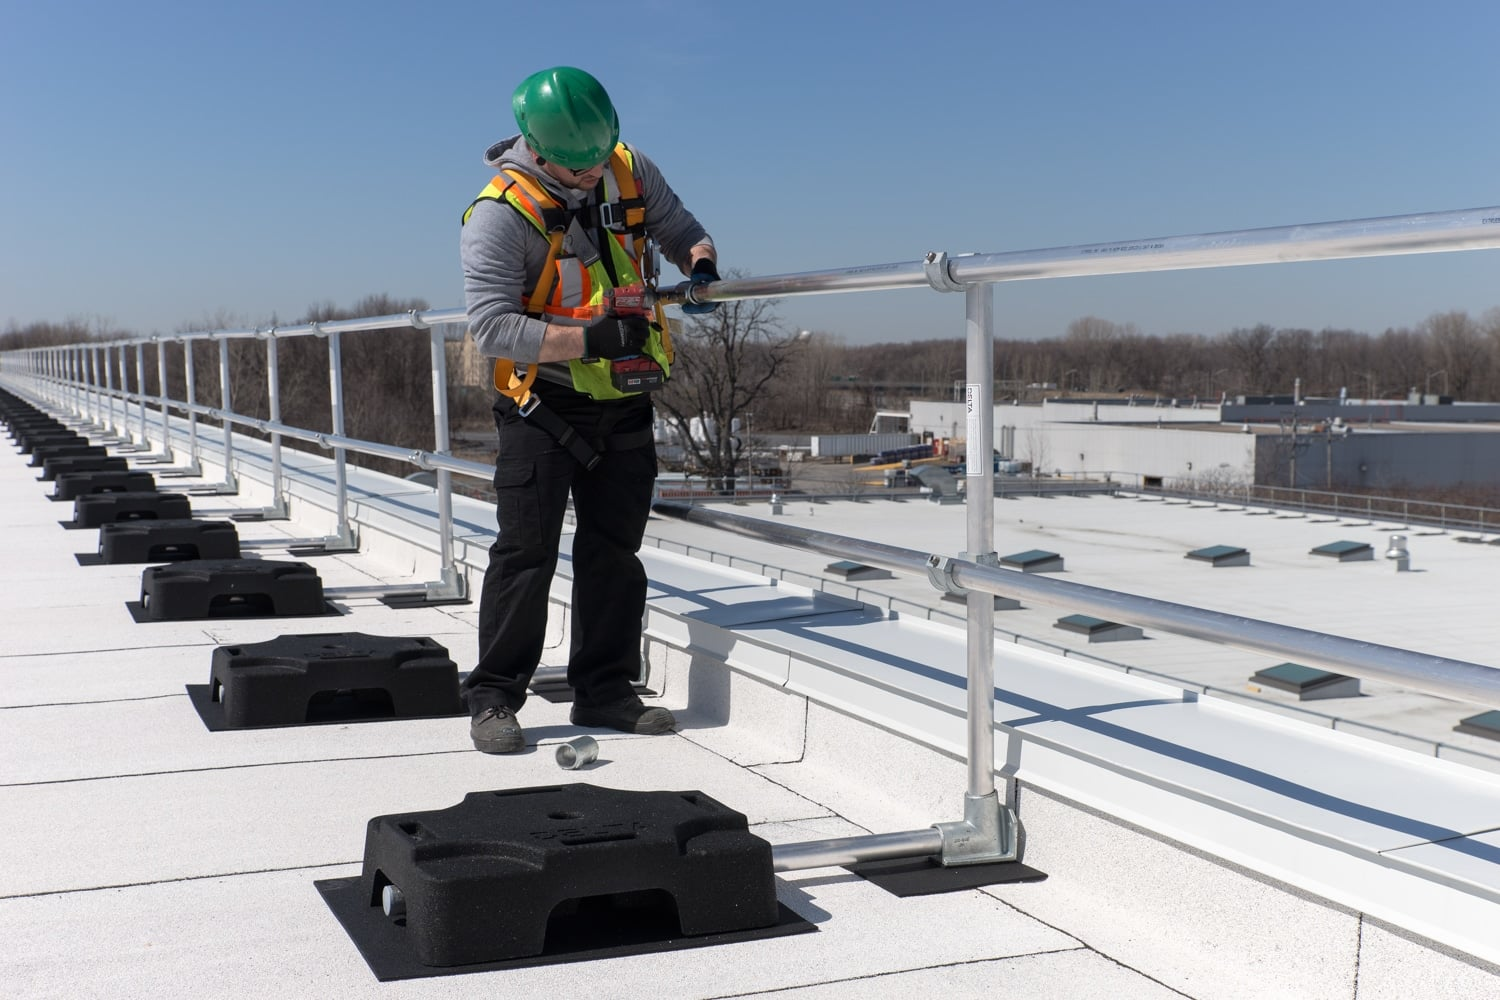 Roof Safety: When Should You Use Safety Rails?